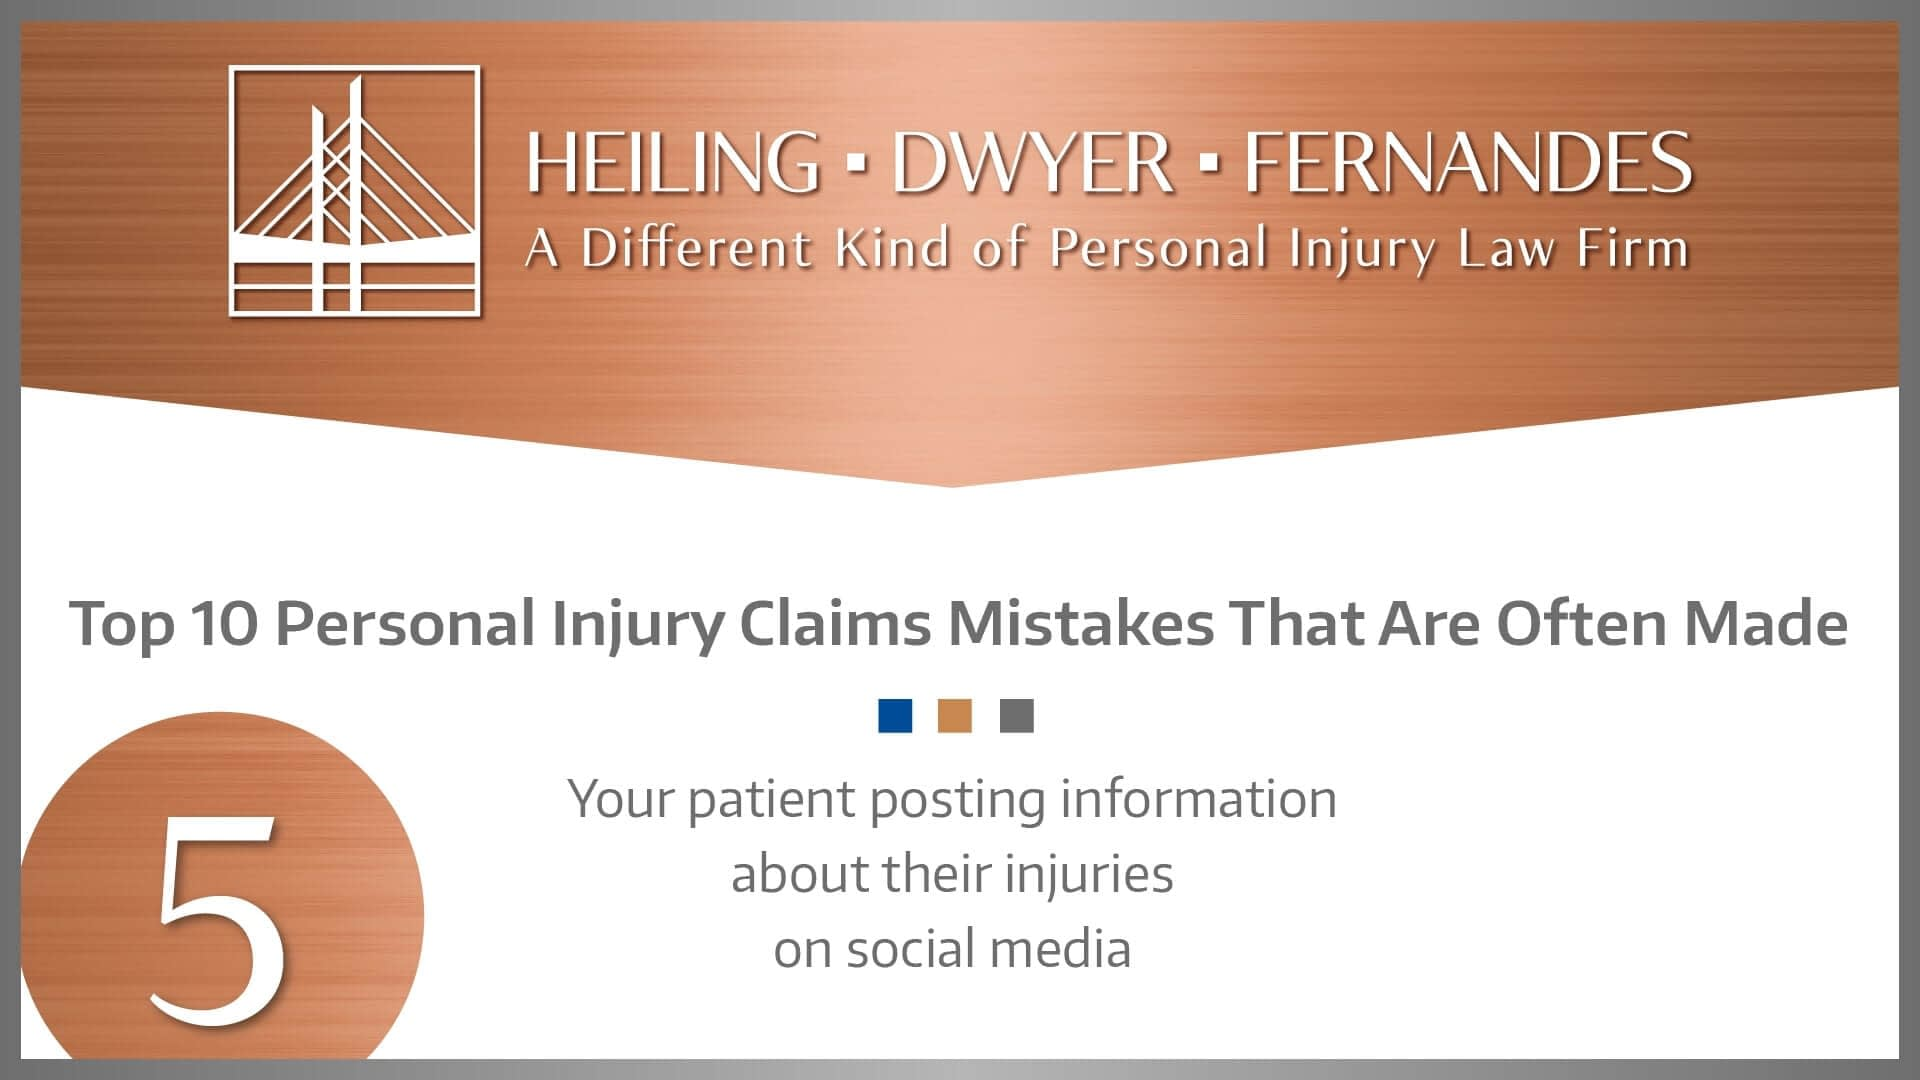 #5 MISTAKE: Your patient posting information about their injuries on social media